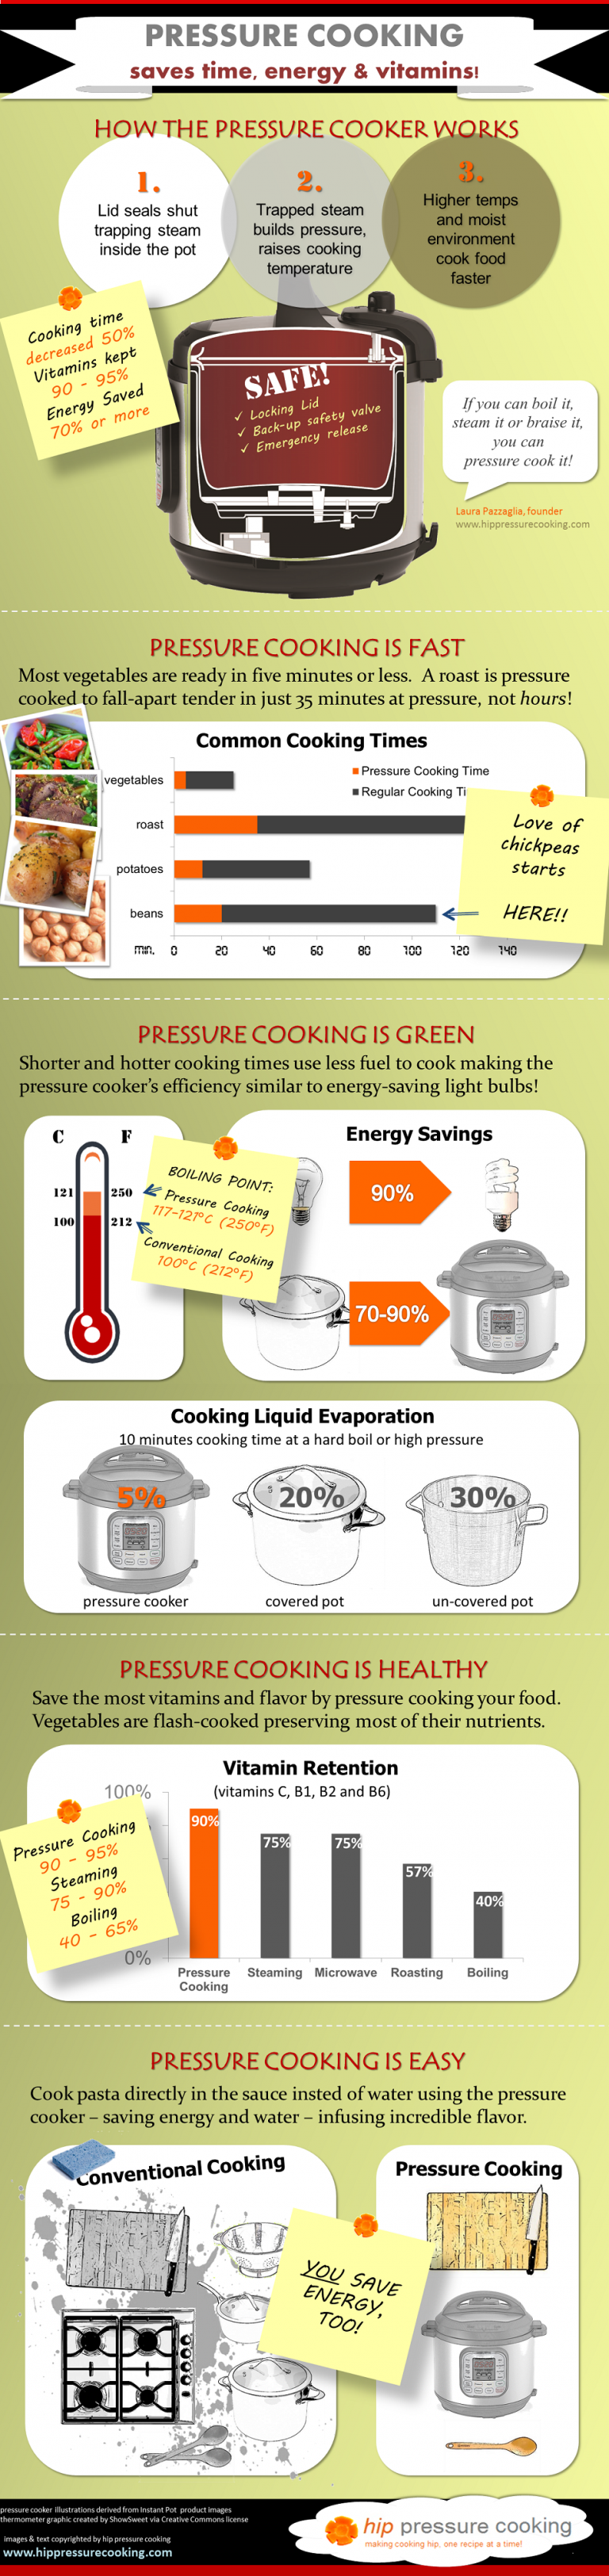 stove top pressure cooker instructions